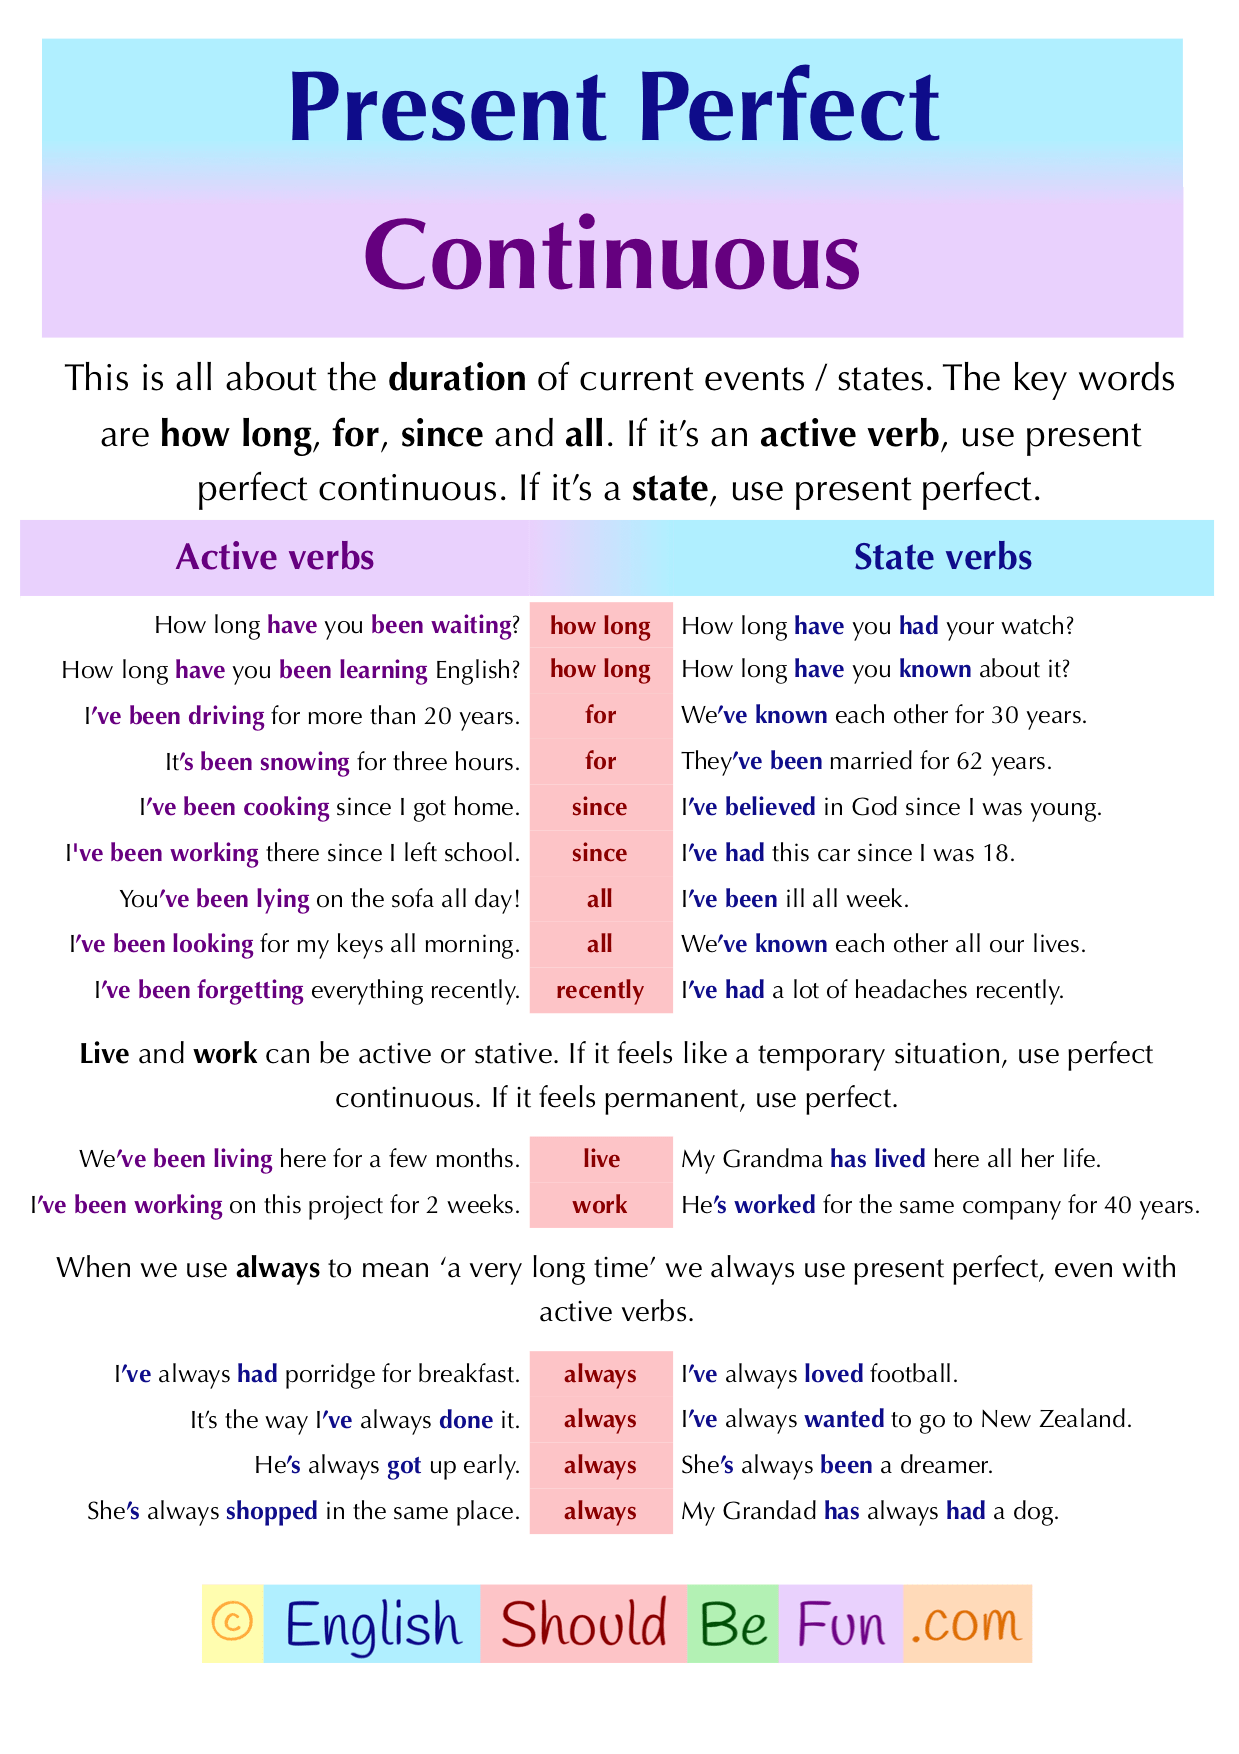 Perfect Continuous English Should Be Fun